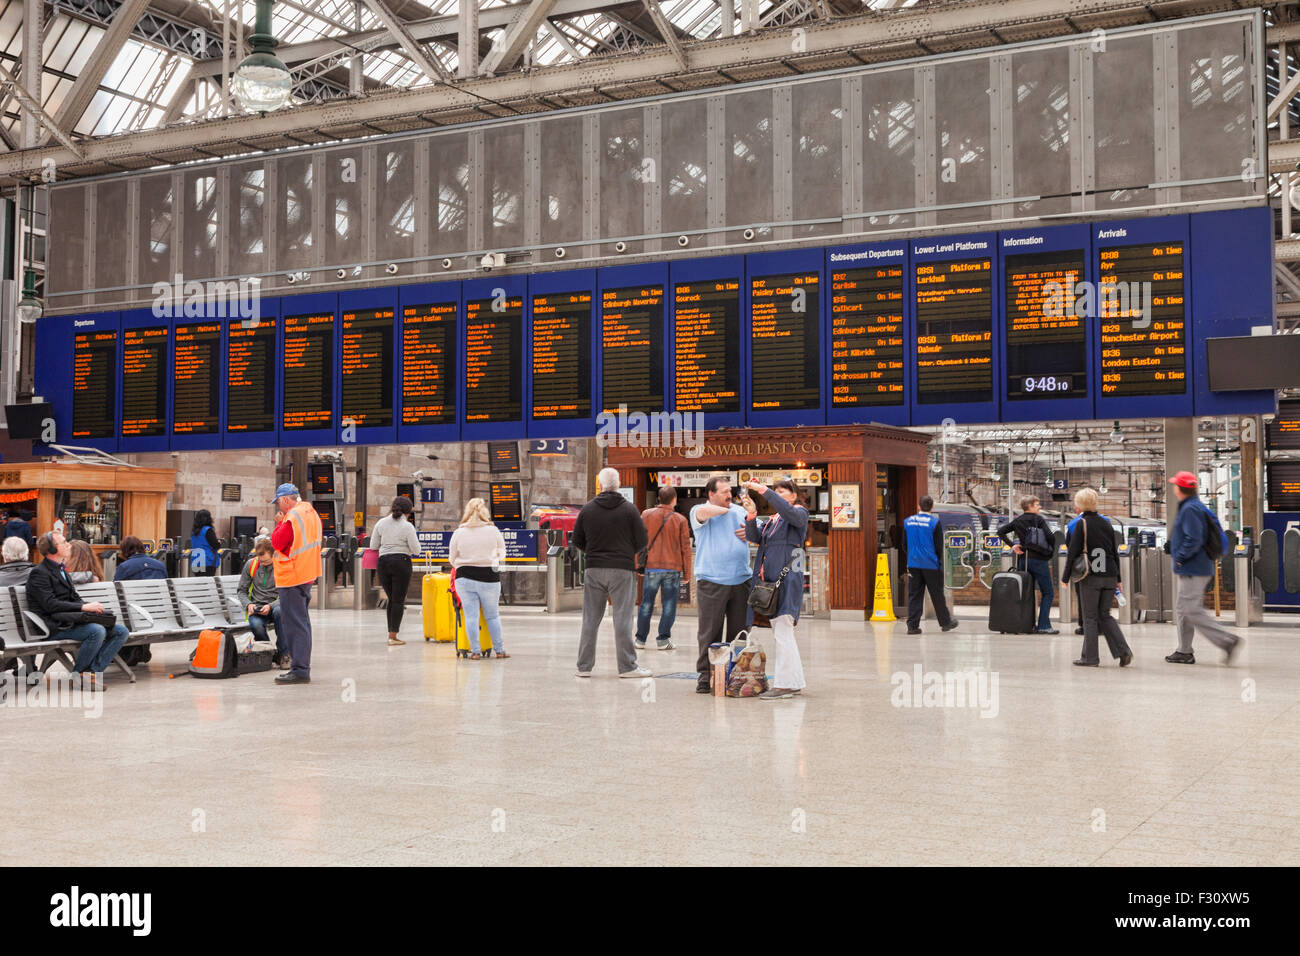 Concourse and Departure Board, Glasgow Central Station, Glasgow, Scotland, UK. - Stock Image